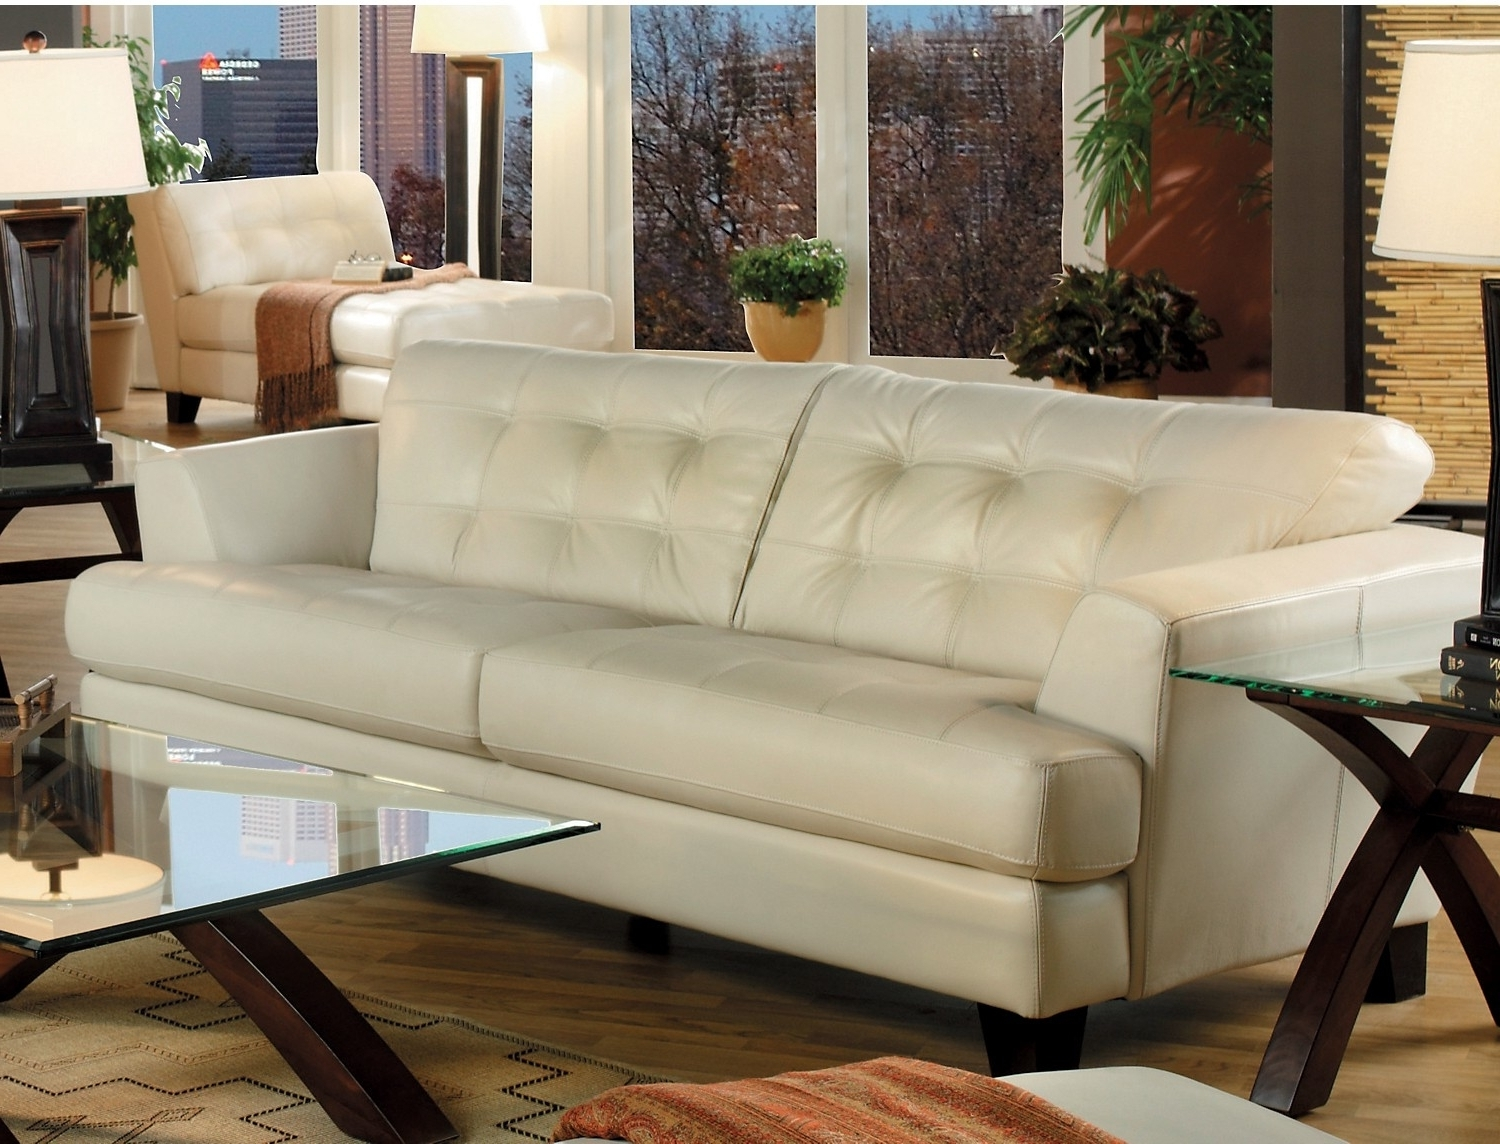 Most Current Cindy Crawford Sofas For Main Floor. Avenue Genuine Leather Sofa – Ivory (Gallery 9 of 20)